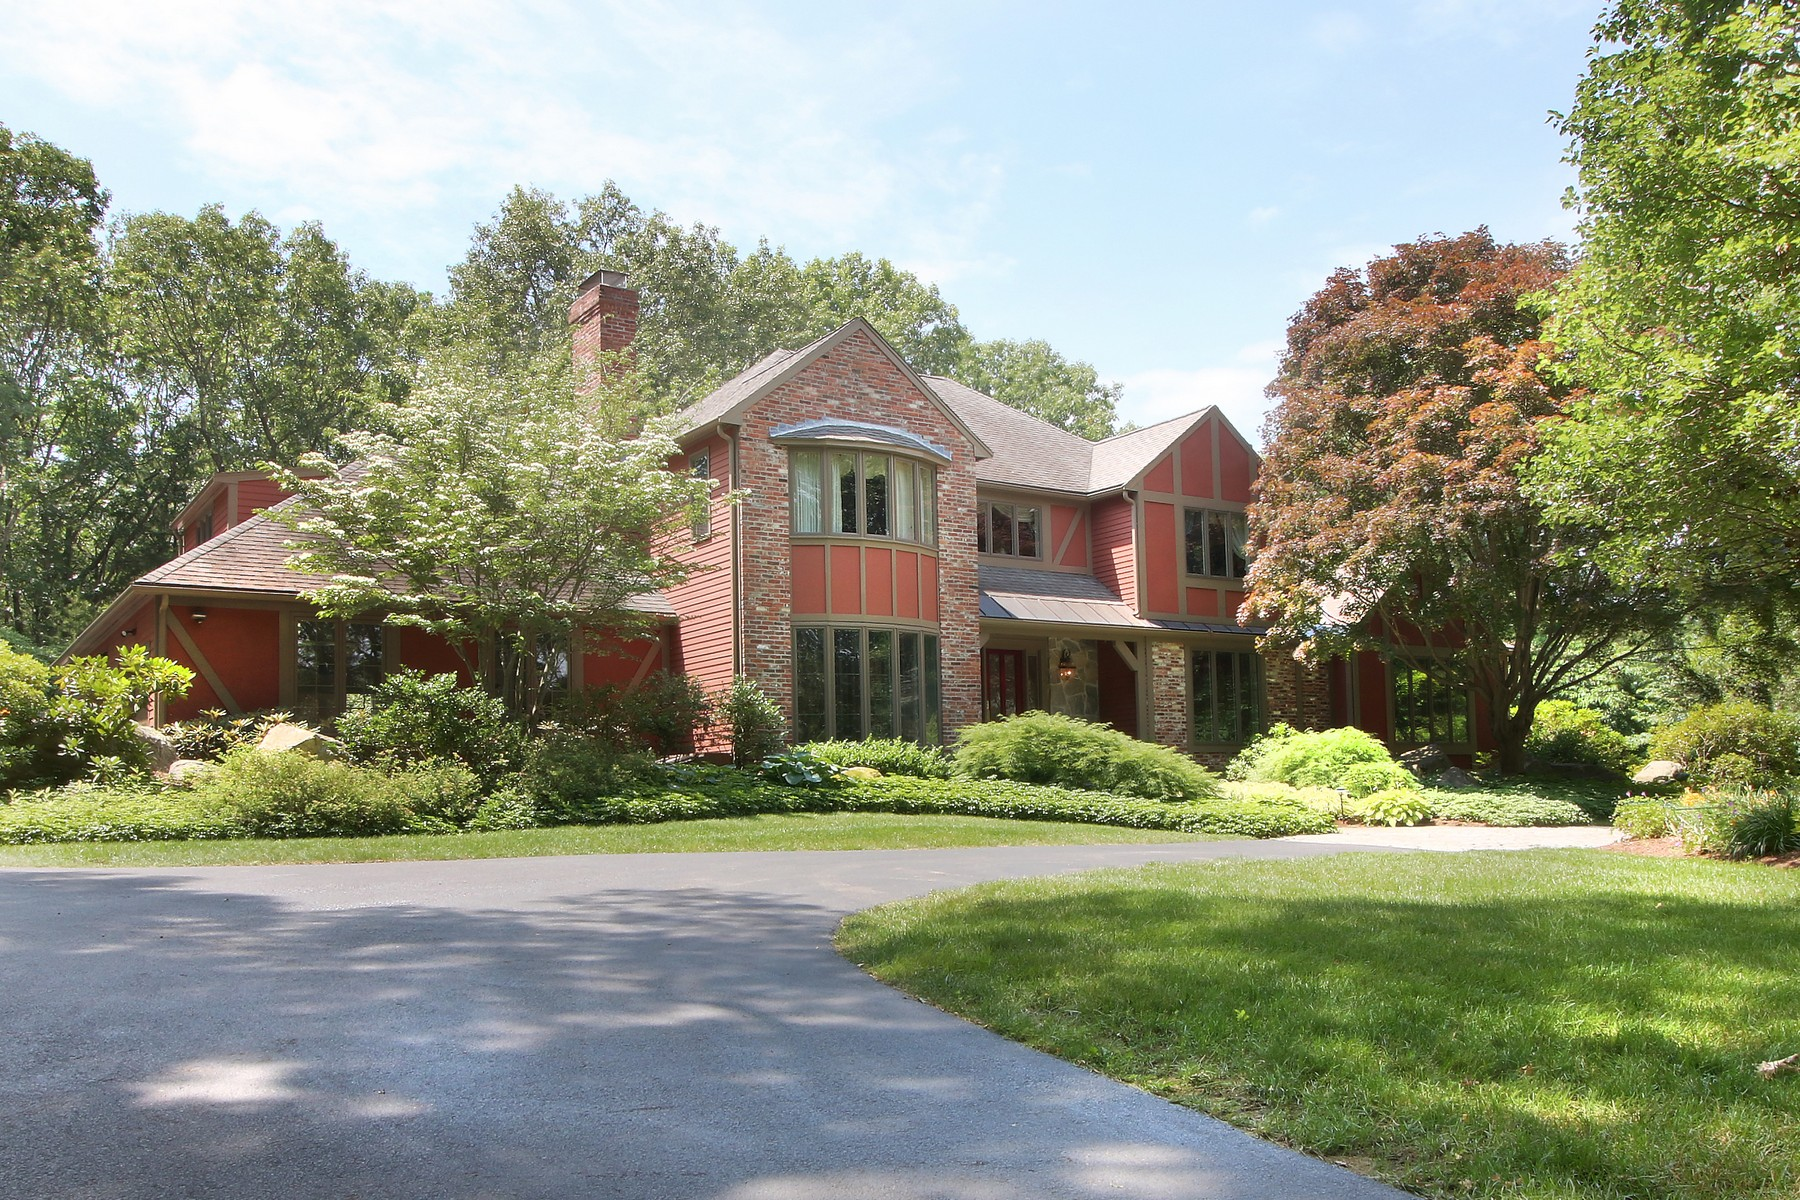 Single Family Home for Sale at Elegant Contemporary Style with Traditional Craftsmanship 9 Smith Hill Road Lincoln, Massachusetts 01773 United States